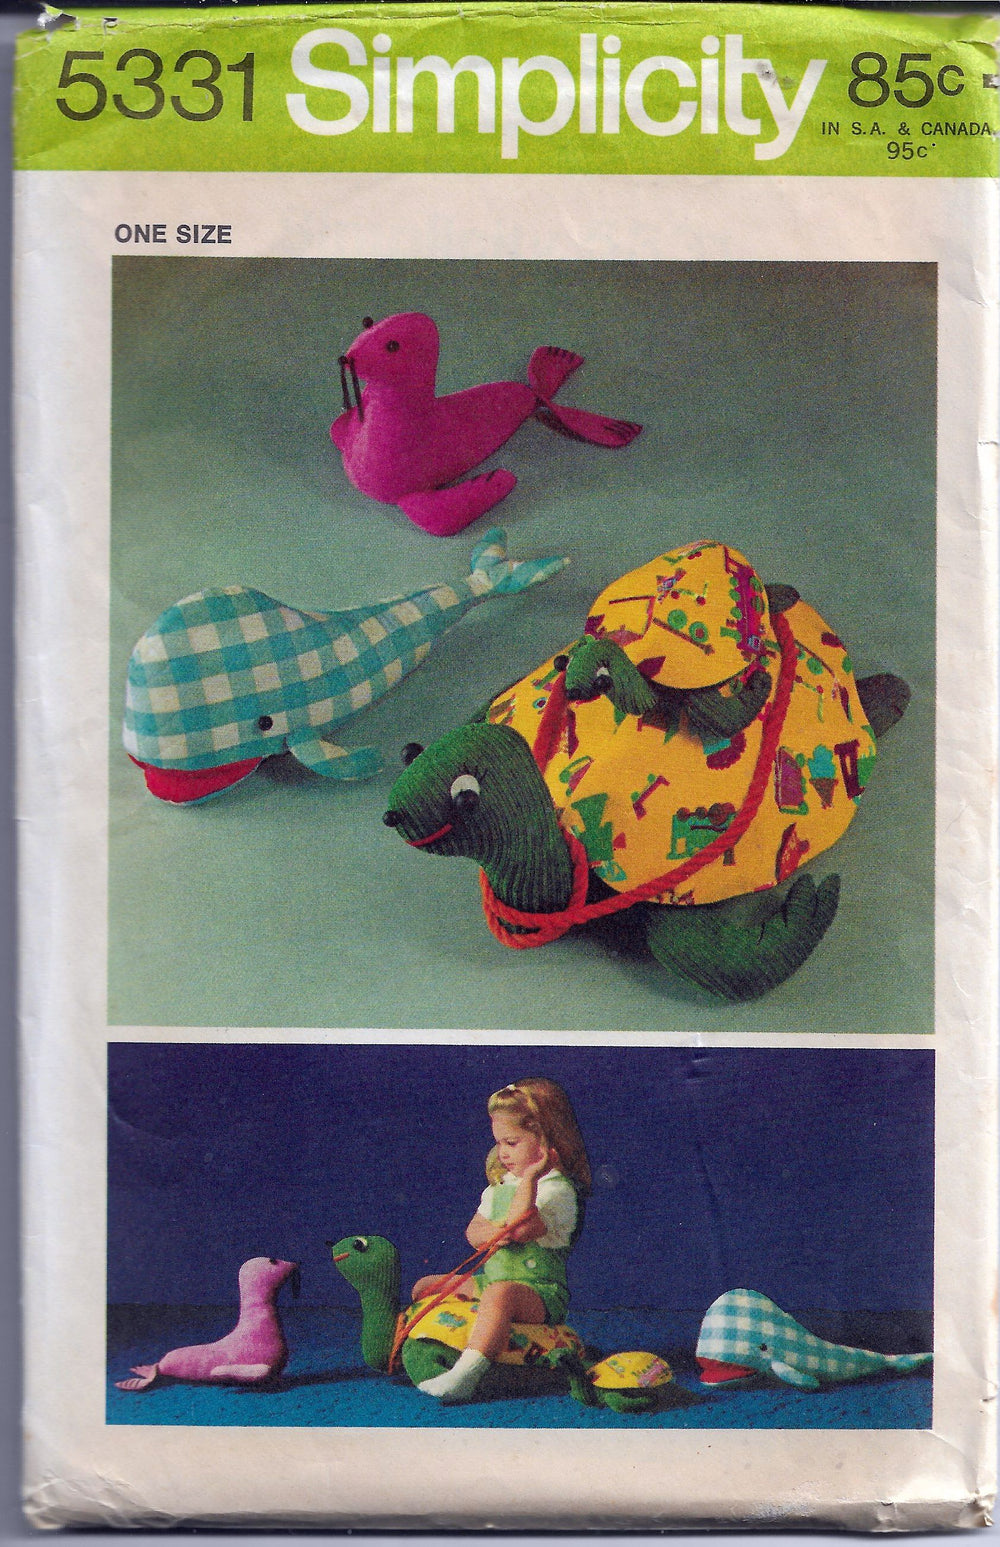 Simplicity 5331 Vintage Sewing Craft Pattern 1970s Ocean Toys Turtle Seal Whale - VintageStitching - Vintage Sewing Patterns